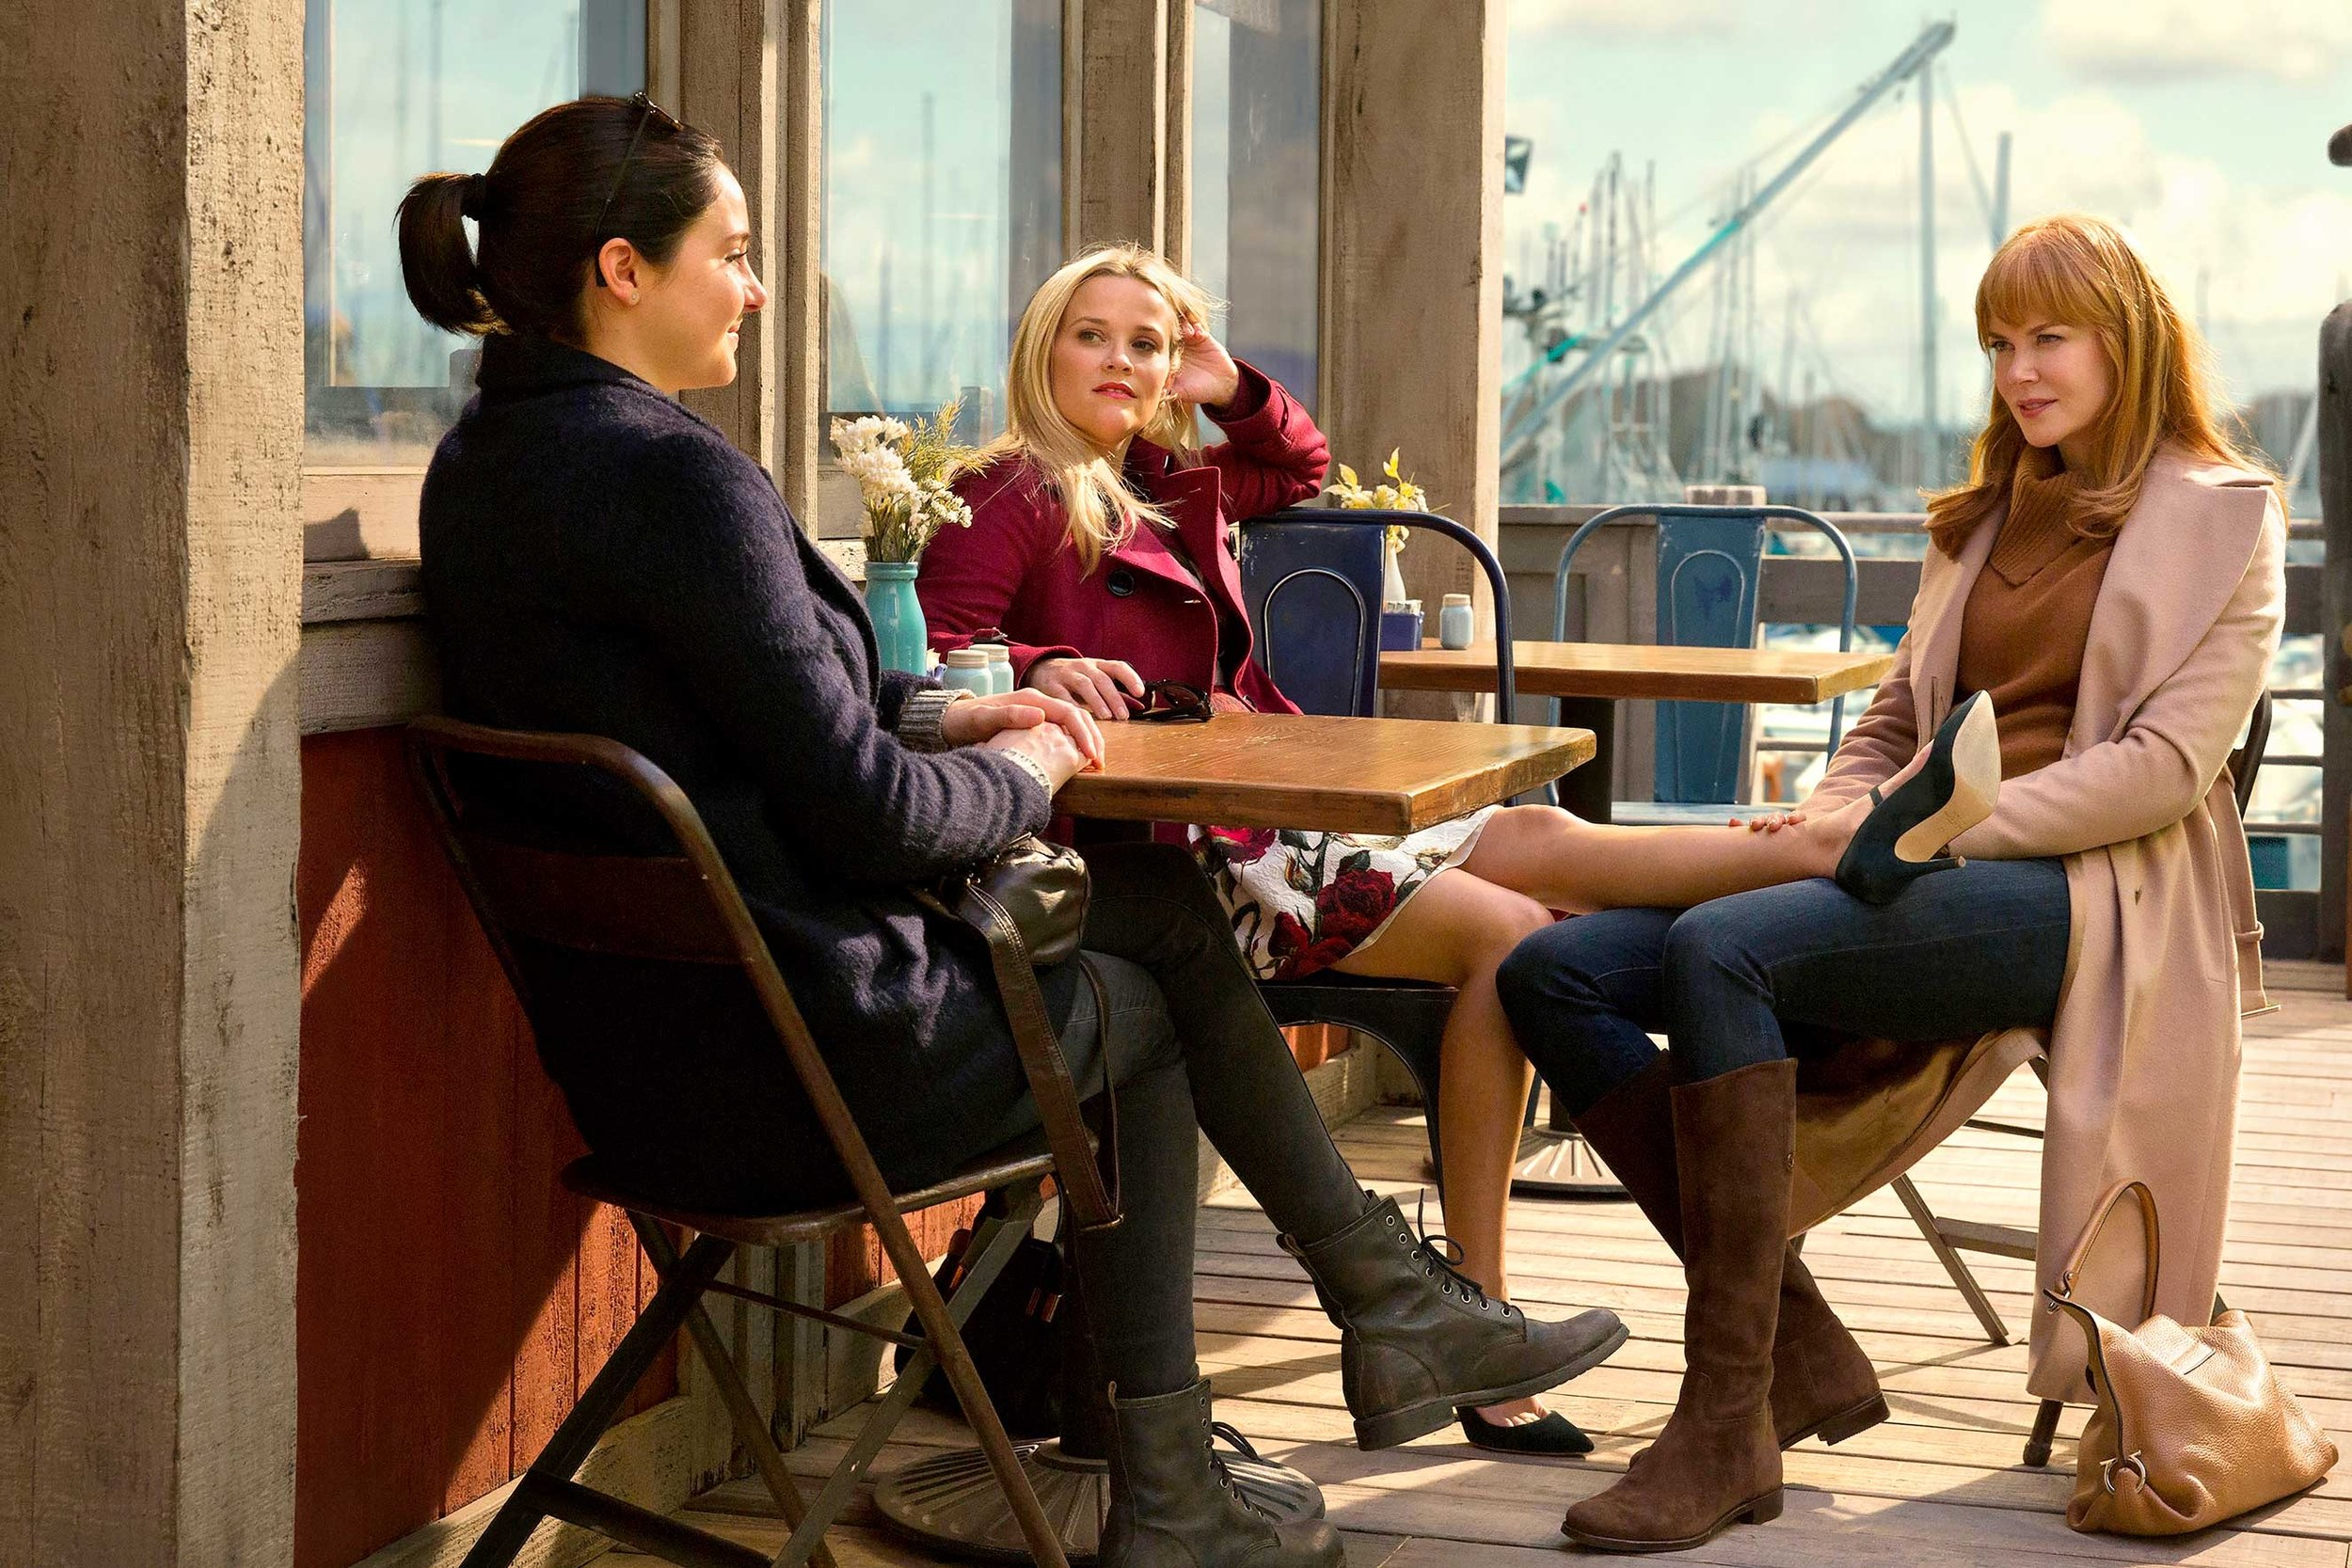 Big Little Lies: full of secrets, scandals and awards